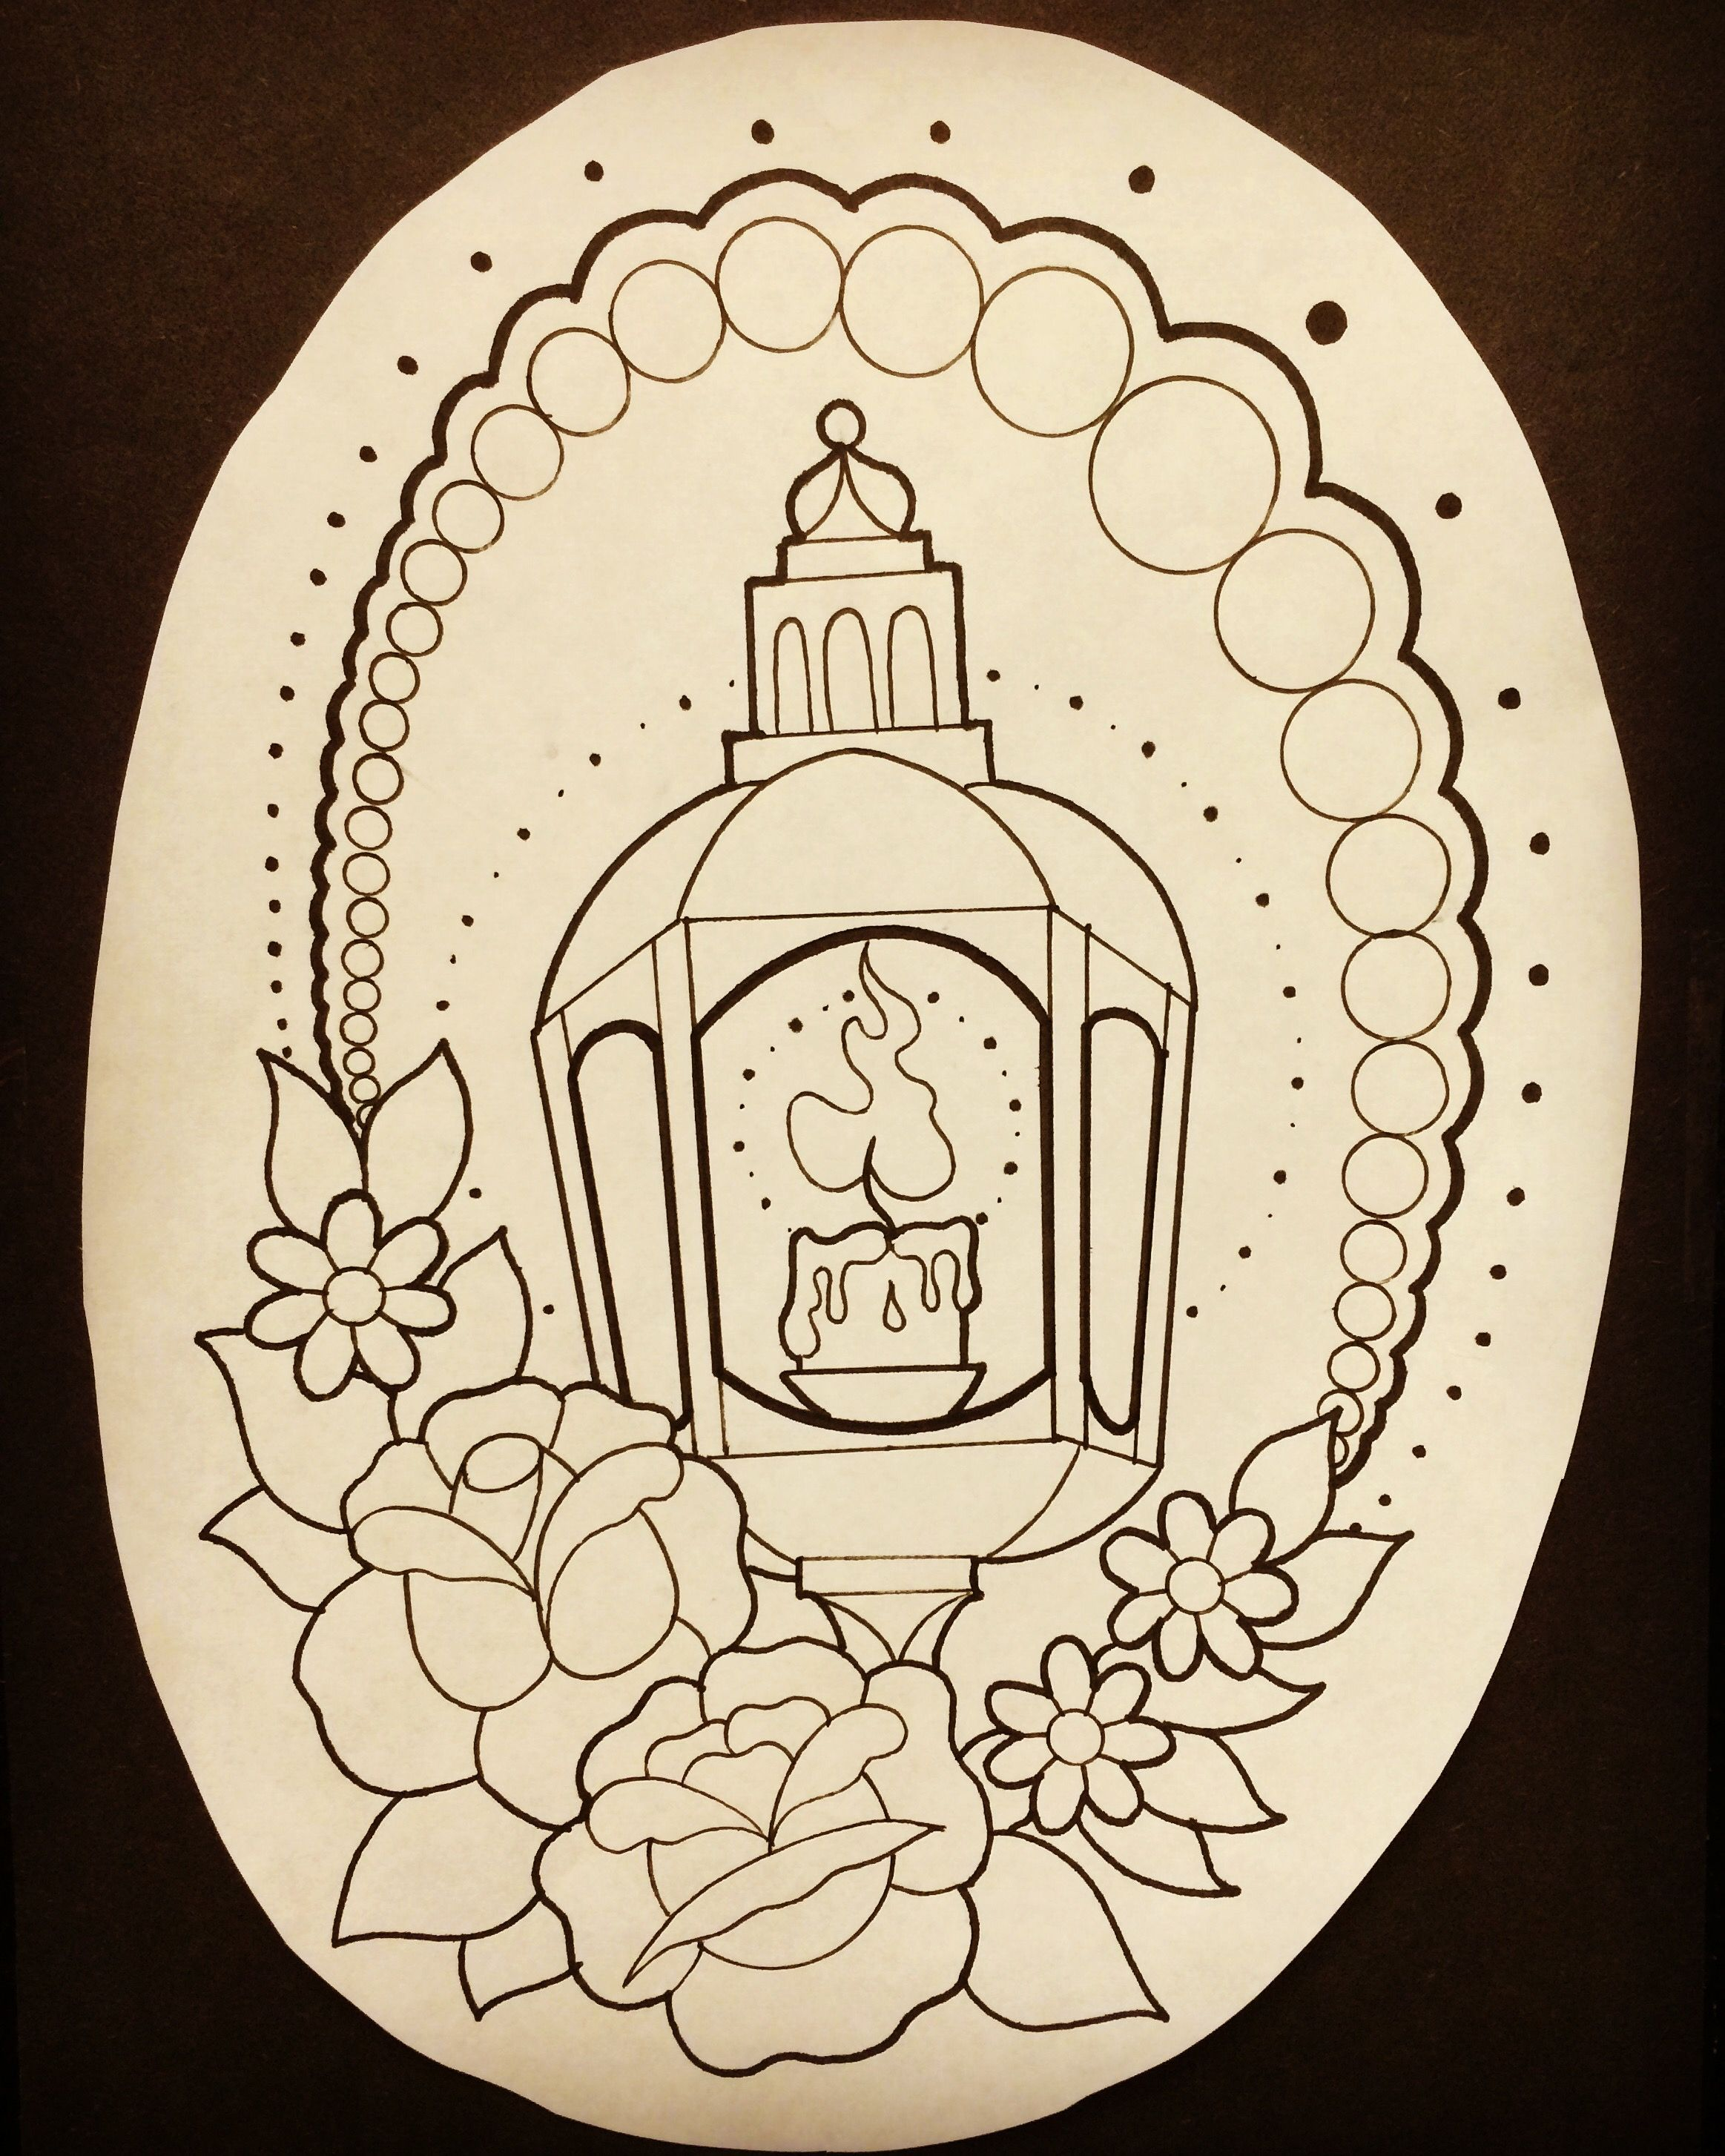 tattoo design of candle lantern with flowers tattoos art by cree schuh pinterest candle. Black Bedroom Furniture Sets. Home Design Ideas